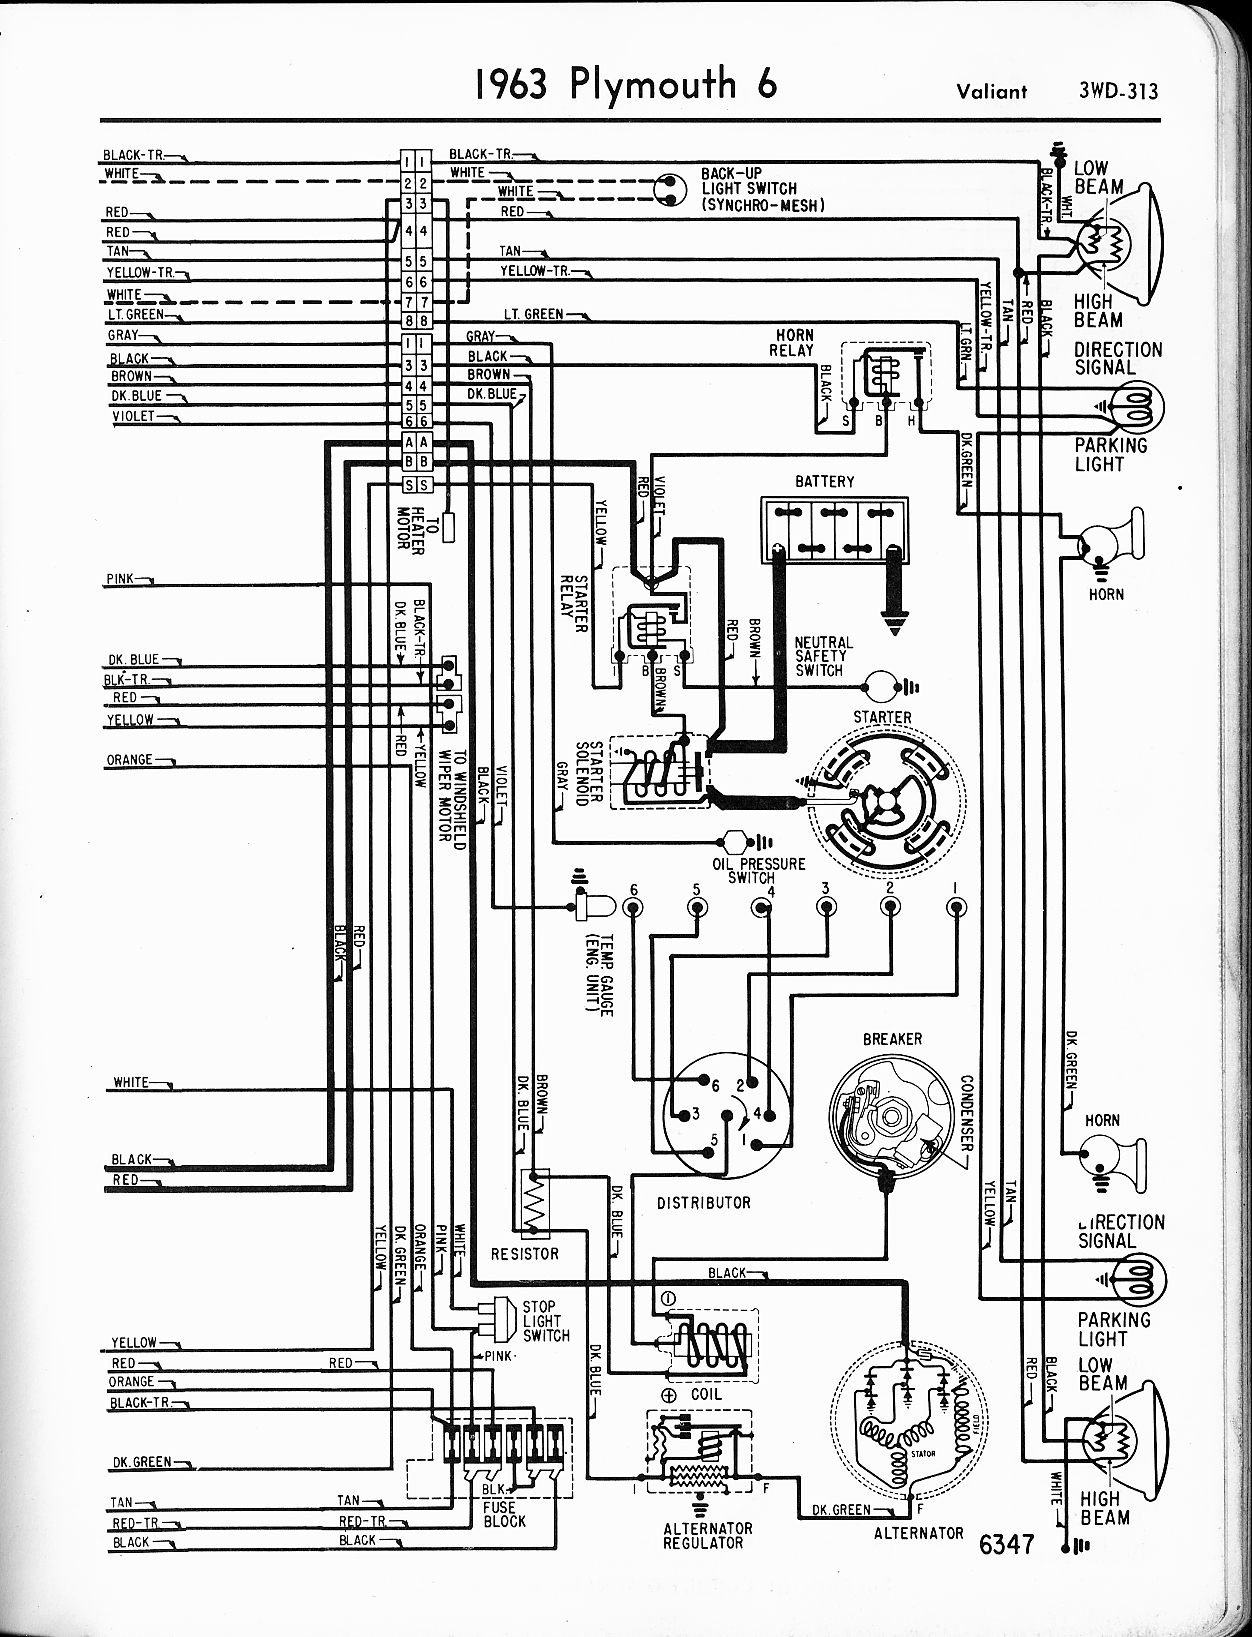 wiring diagram together with 1970 dodge charger wiring diagram